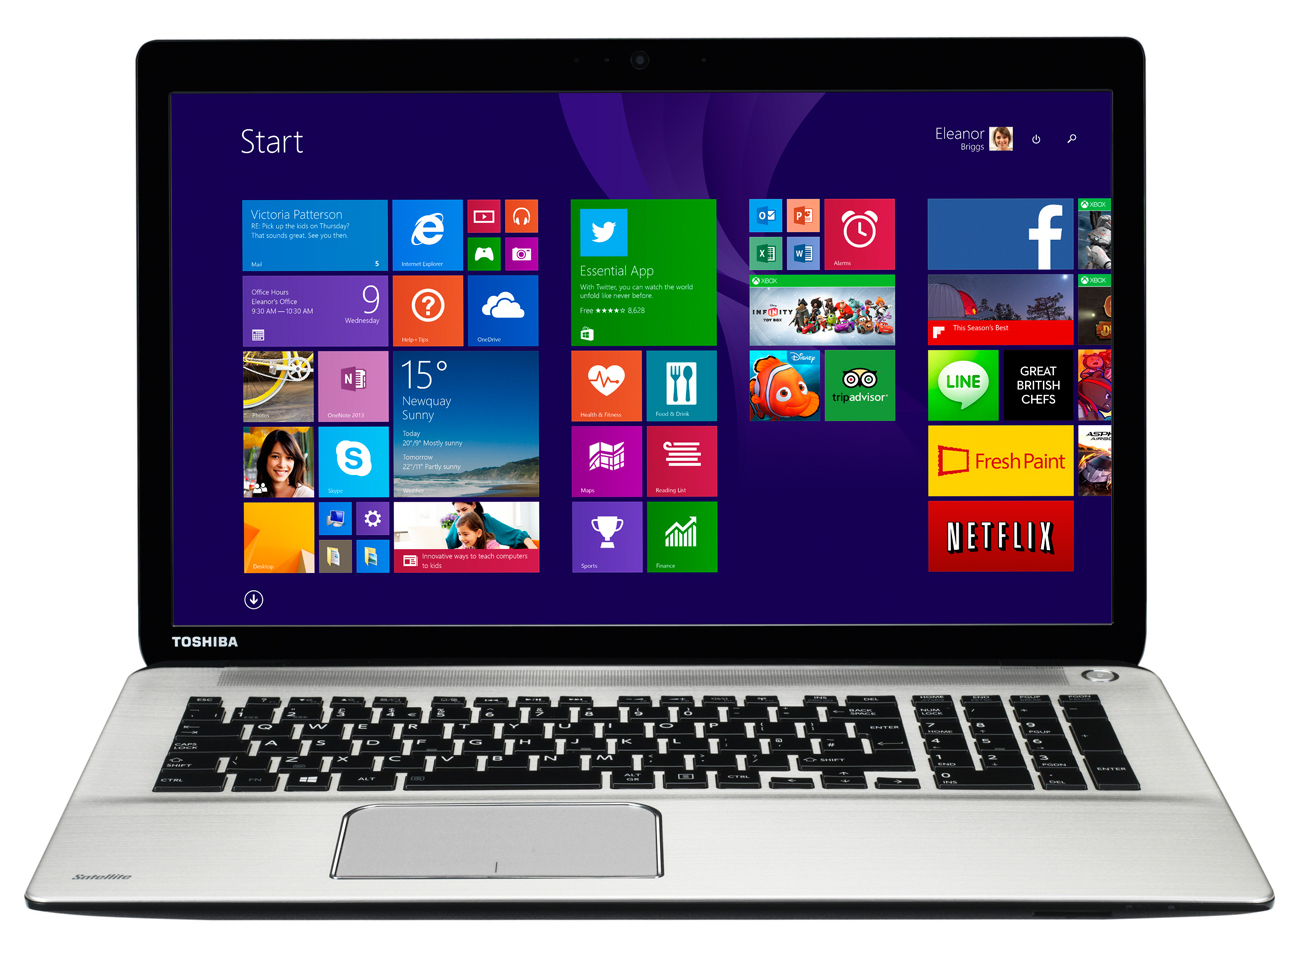 Toshiba Satellite P70-B Windows 8 X64